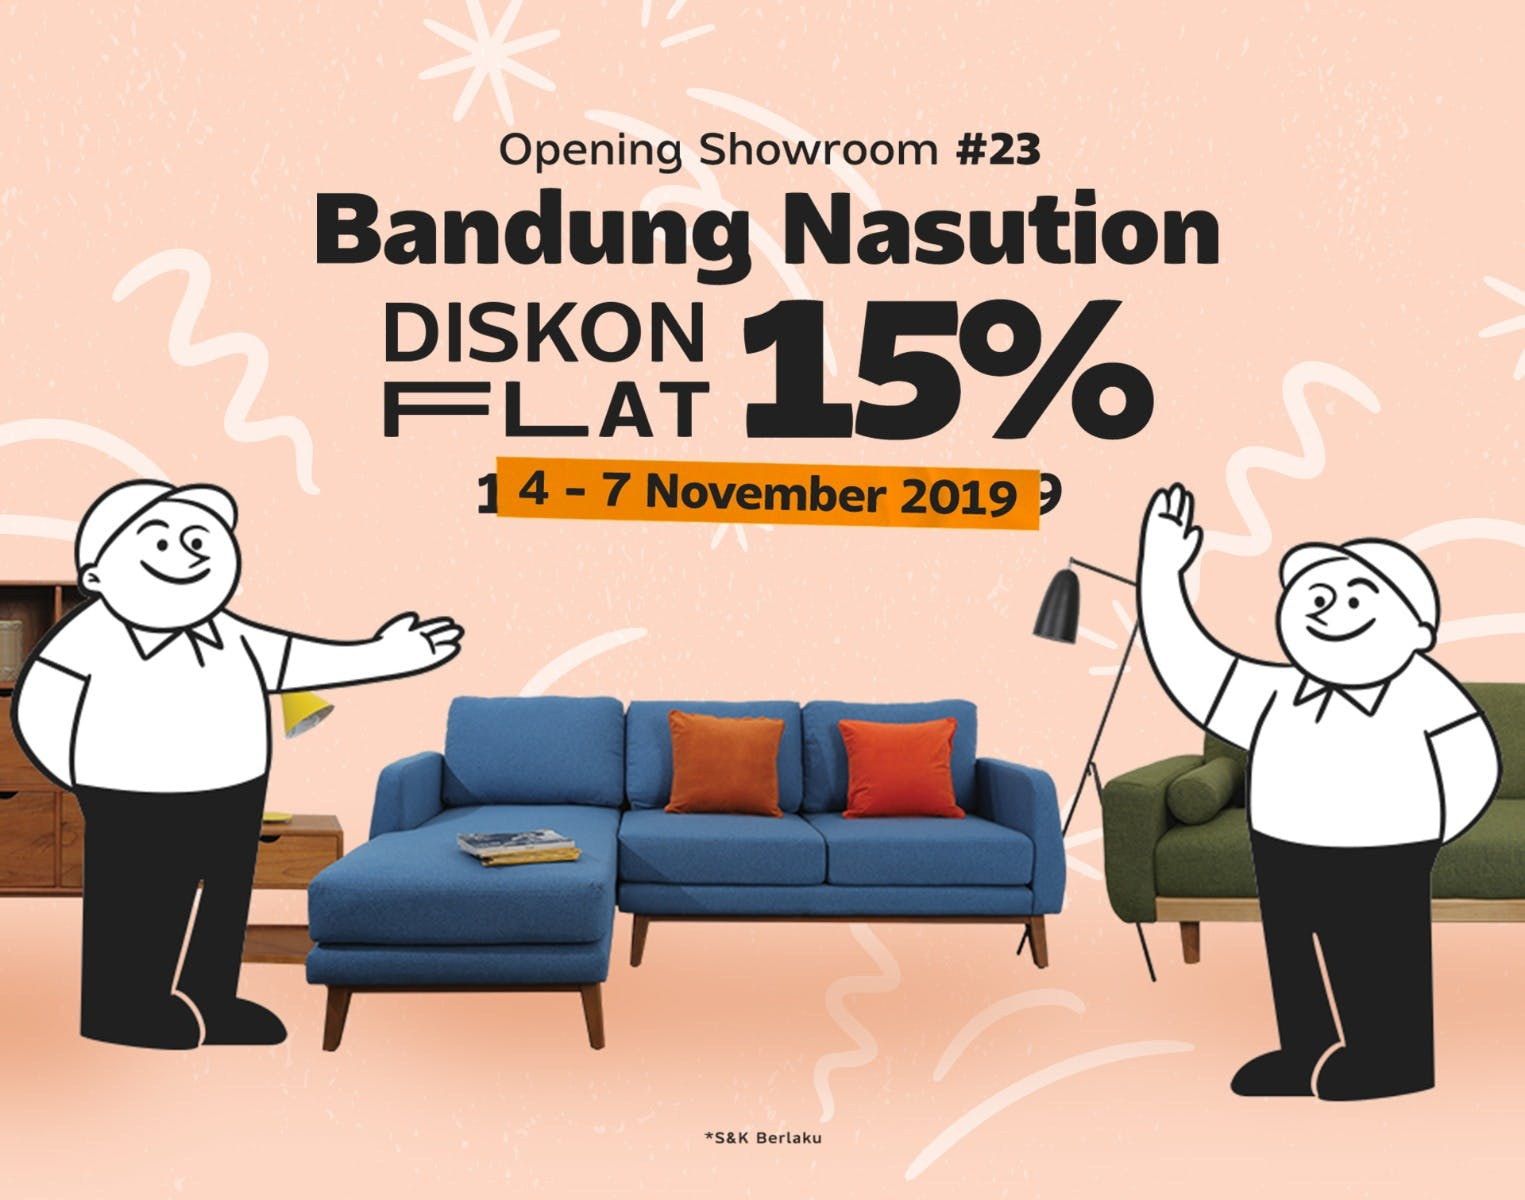 Bandung Nasution Showroom Launching